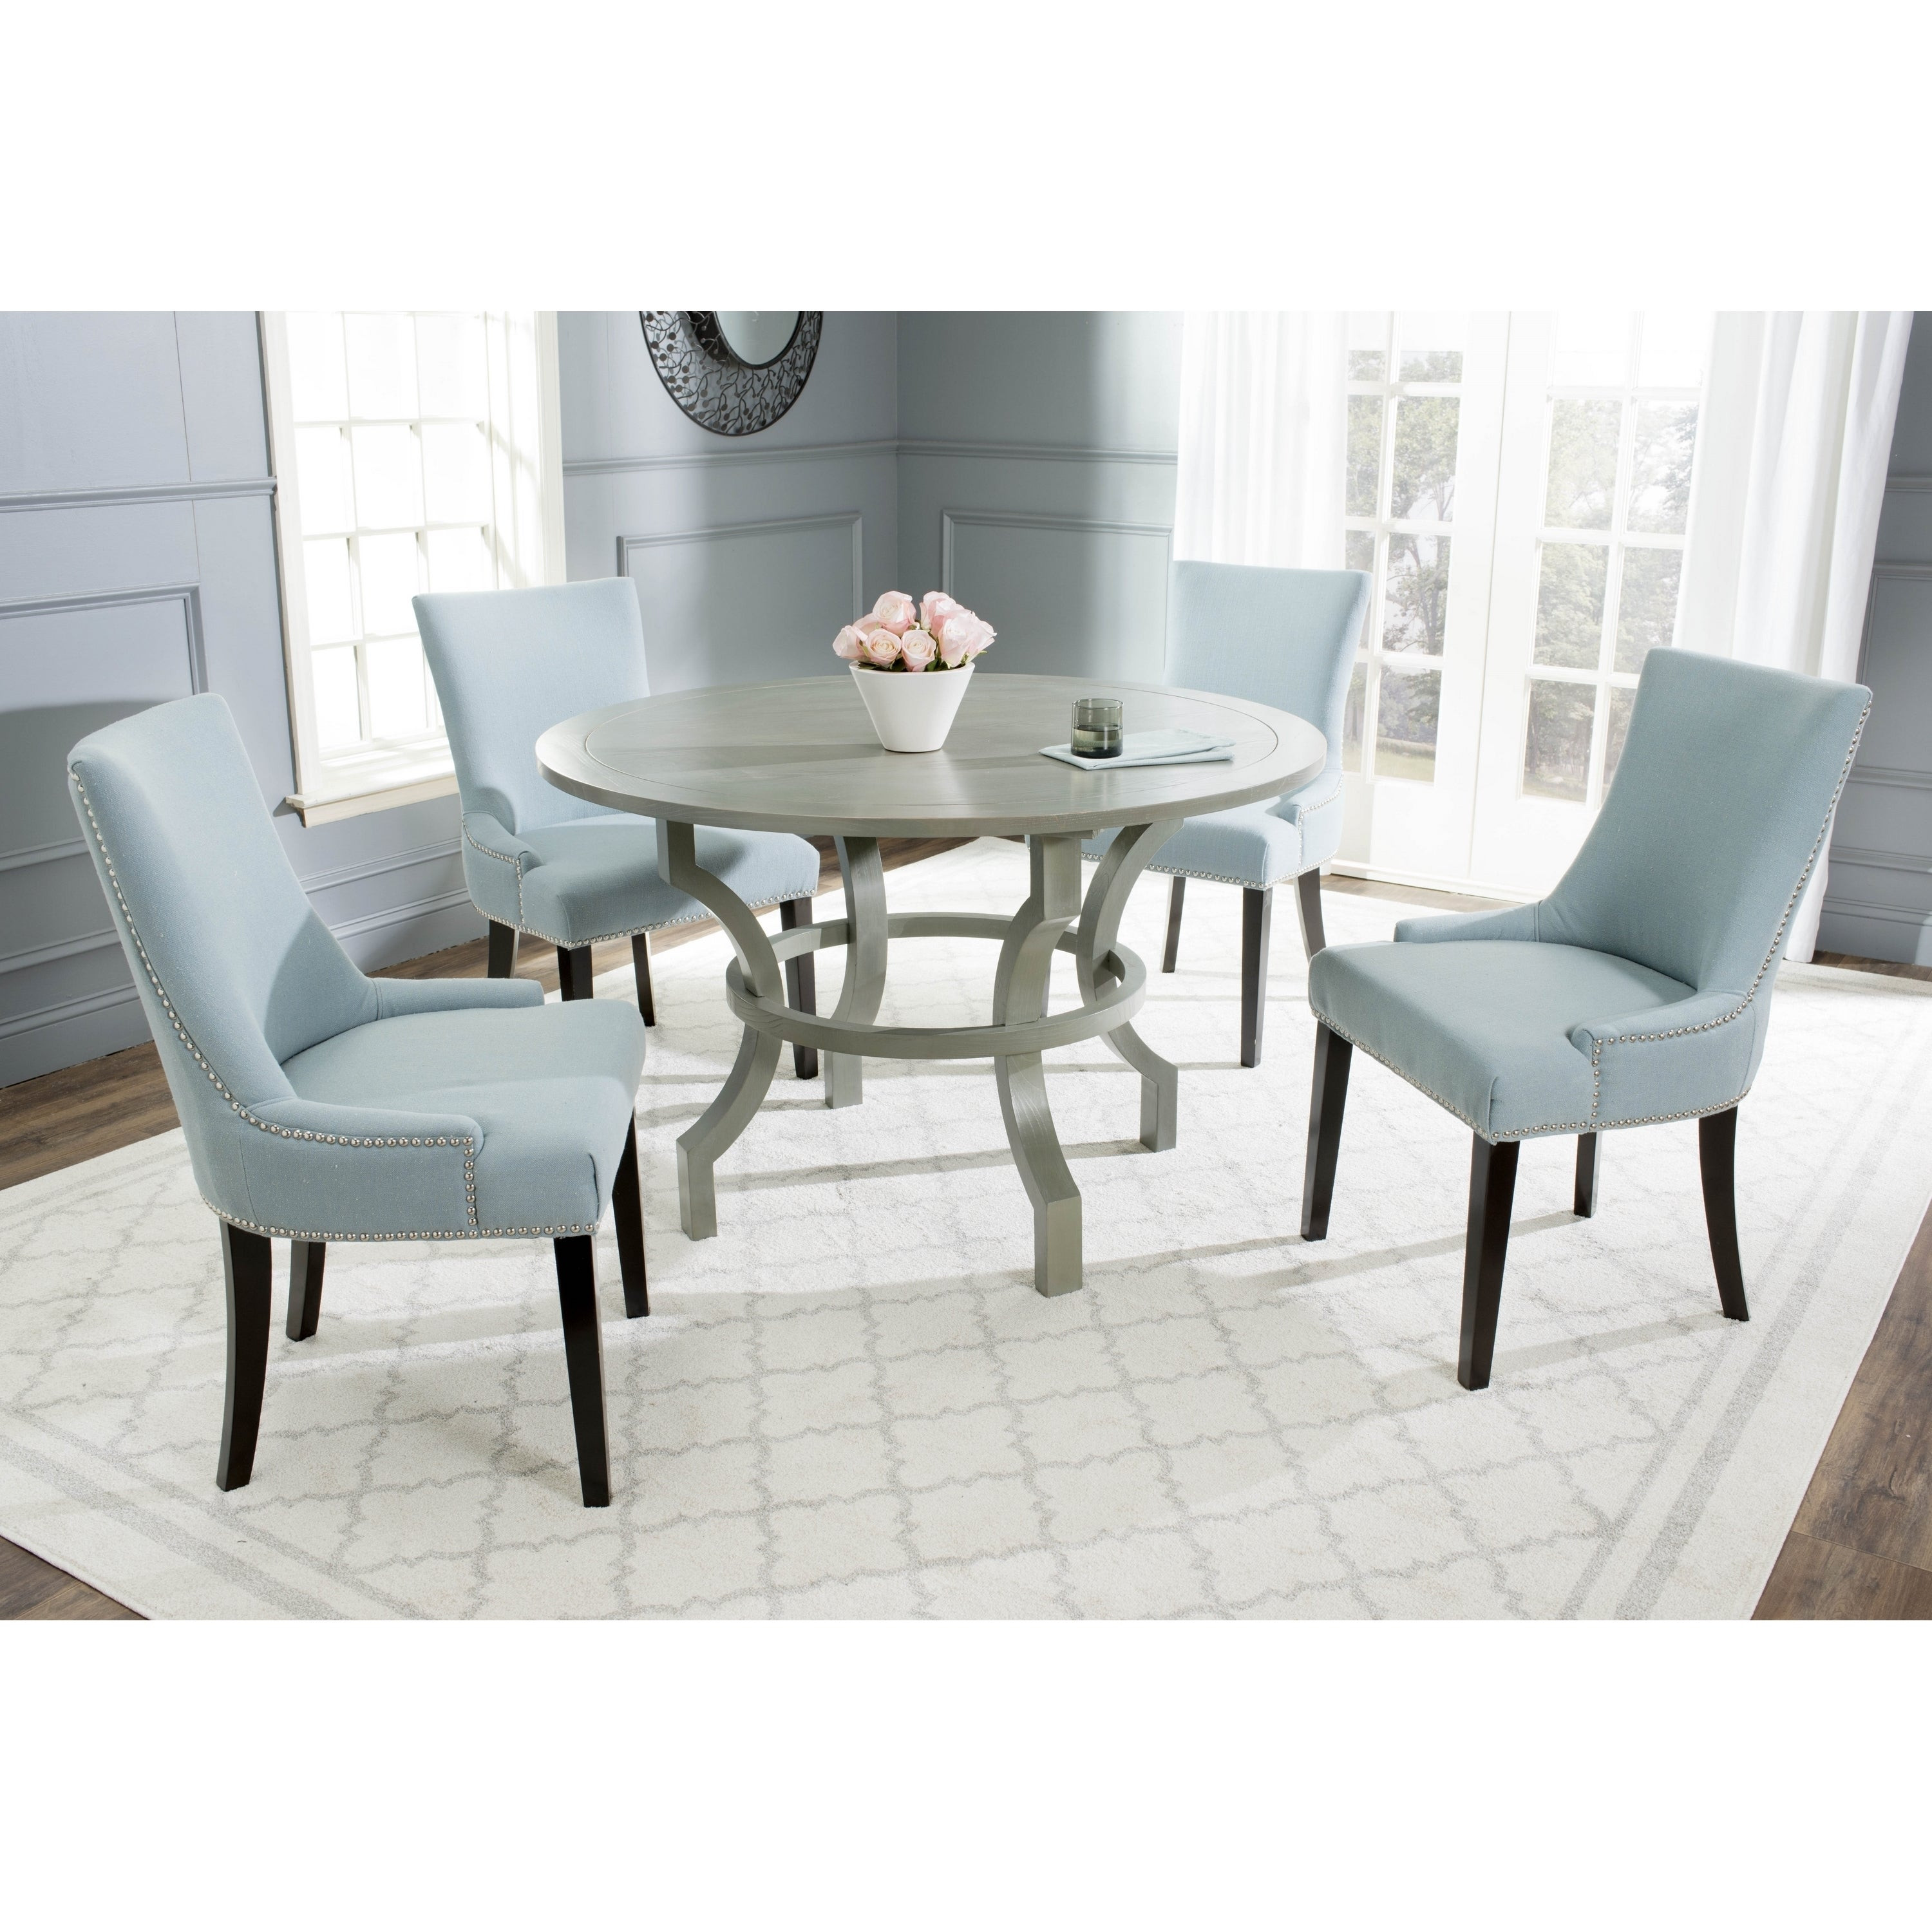 Best ideas about Gray Dining Table . Save or Pin Safavieh Ludlow Ash Grey Round Dining Table Furniture Bar Now.